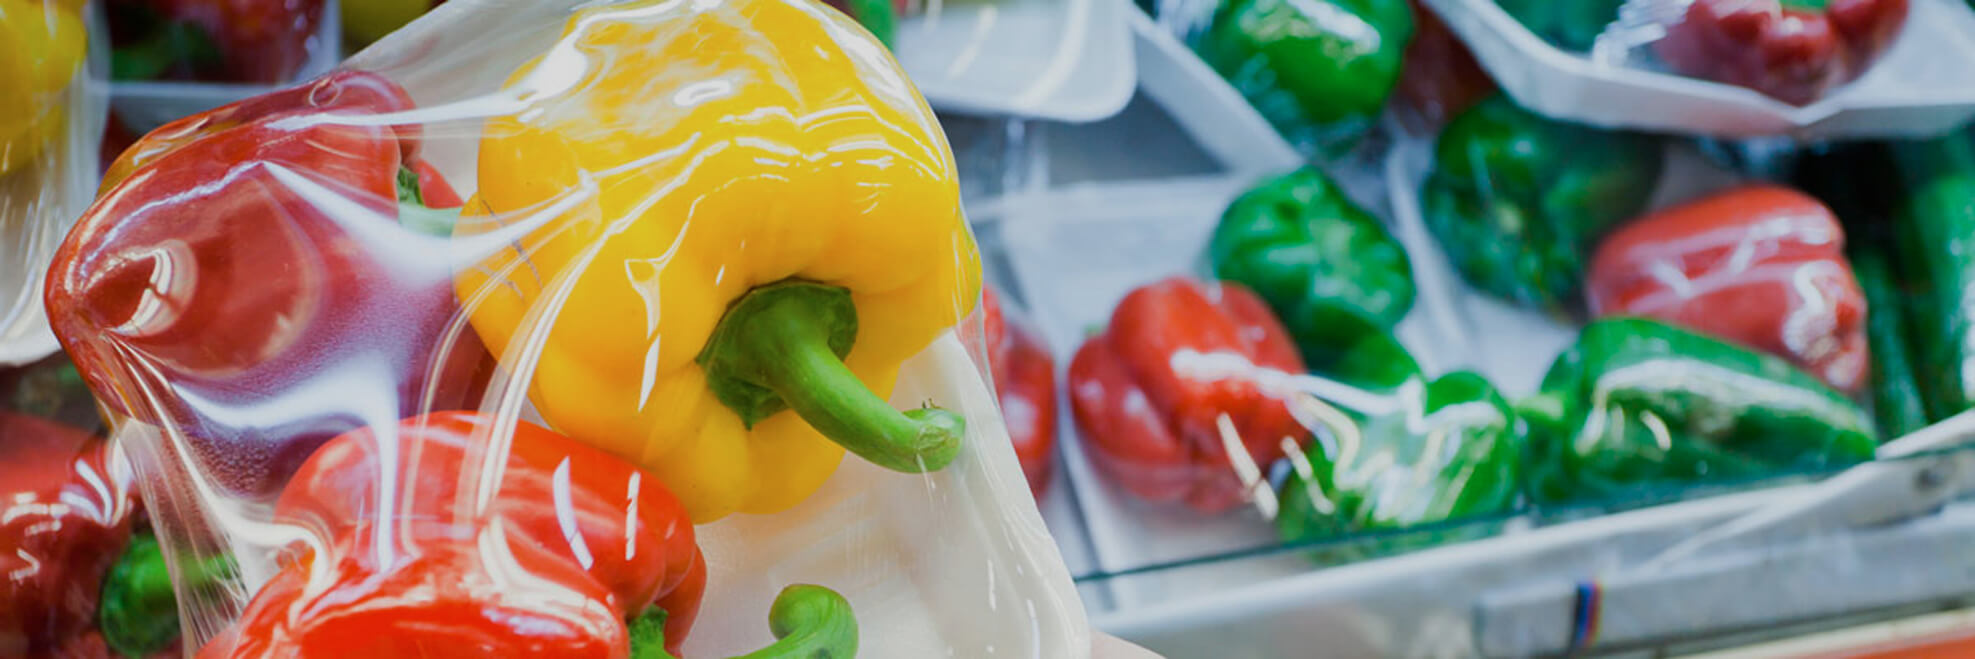 shrink wrapped red, yellow and green peppers